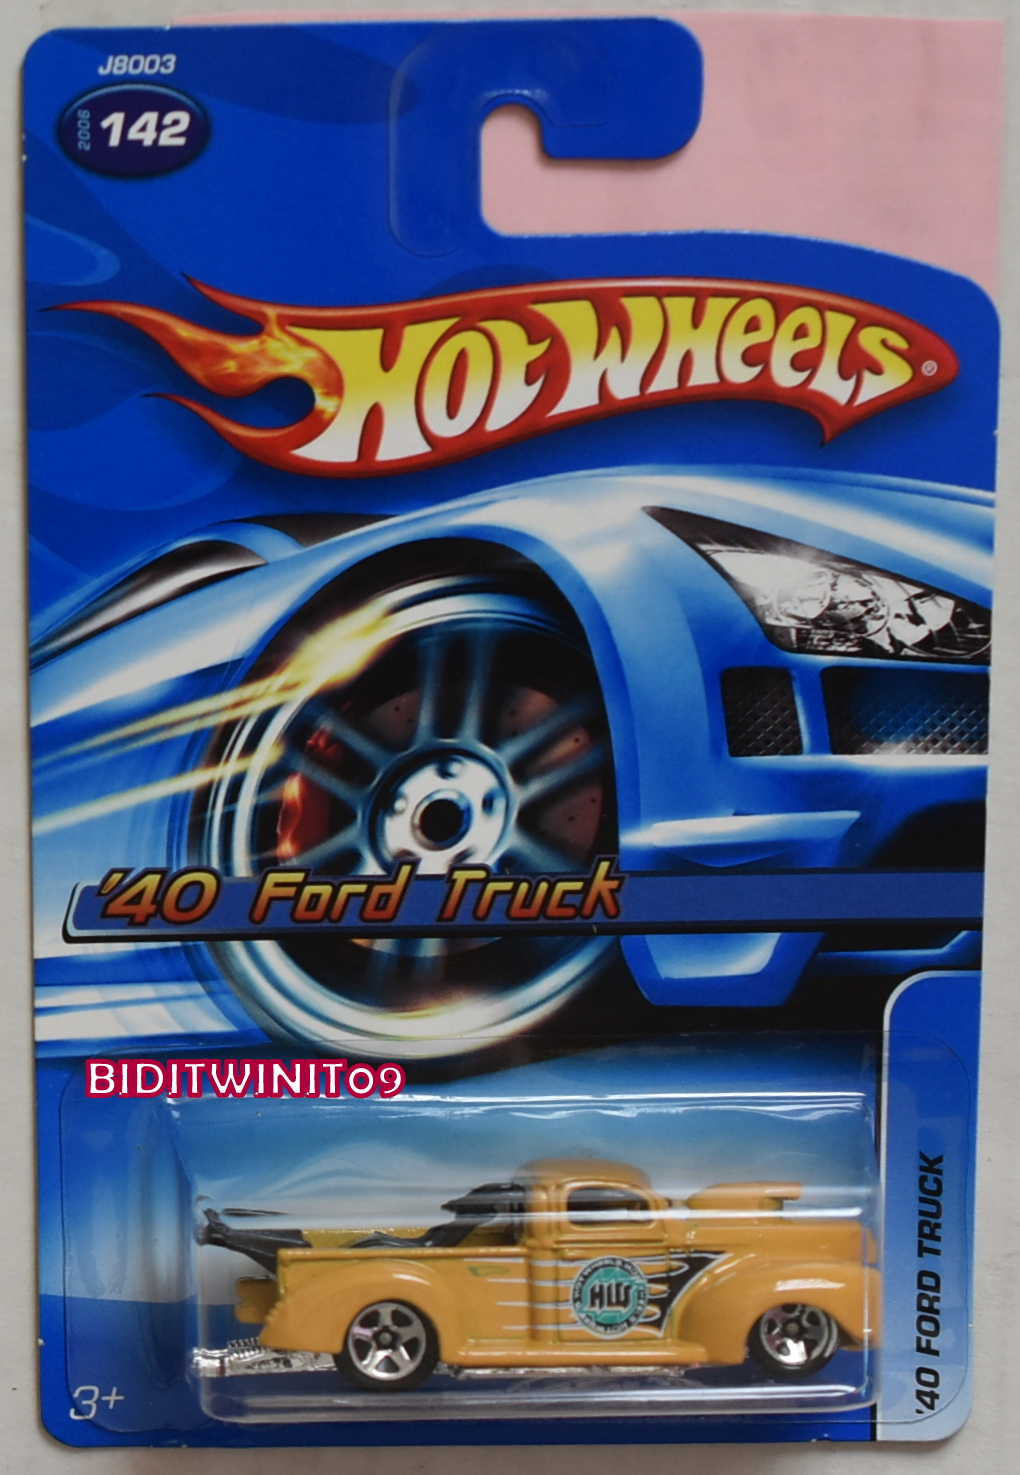 HOT WHEELS 2006 '40 FORD TRUCK TAN #142